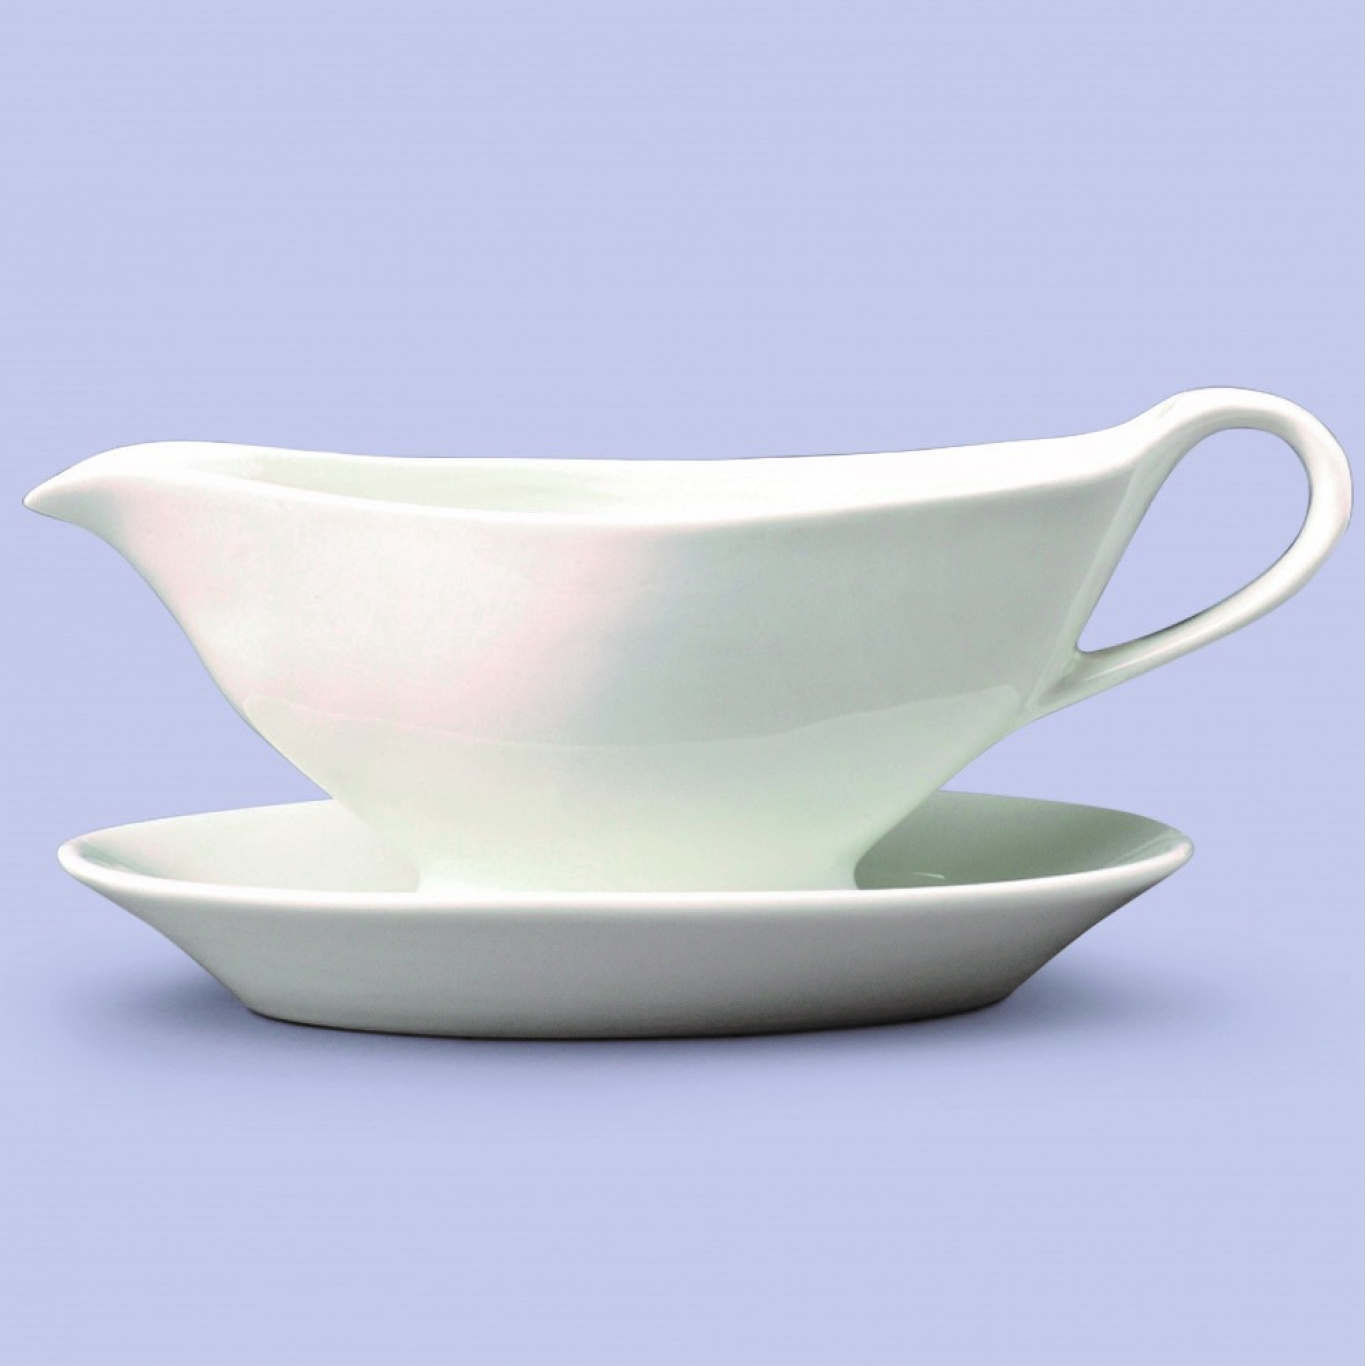 Image of Mini Sauce Boat & Tray